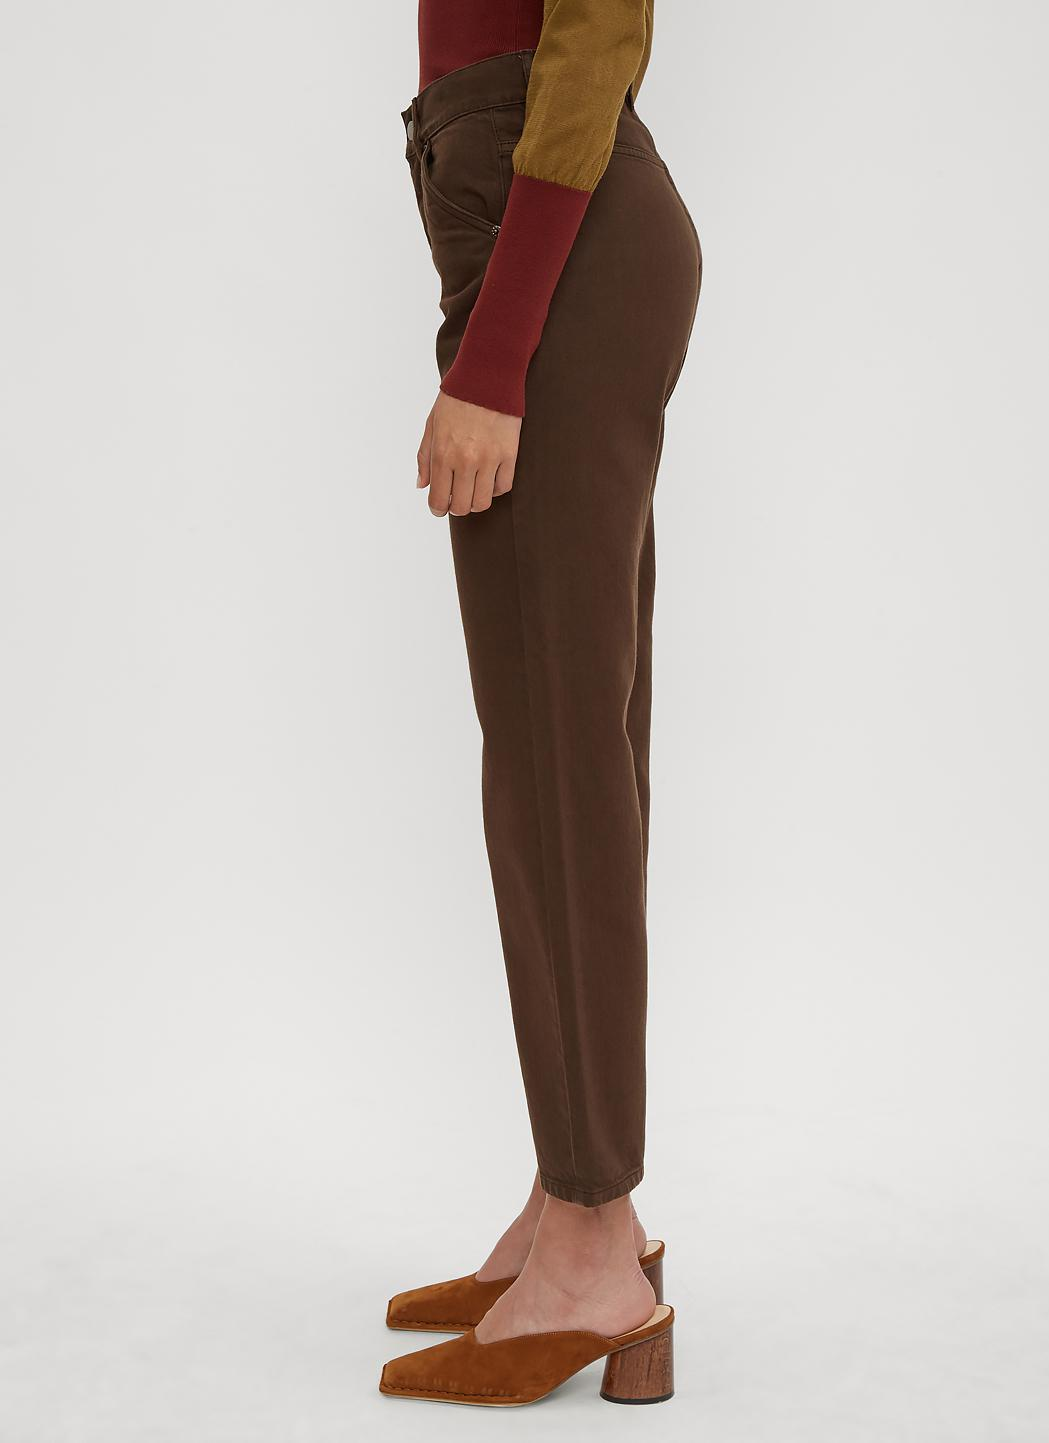 abfd3f7df Jacquemus Le Jean Straight Leg Jeans In Brown in Brown - Lyst